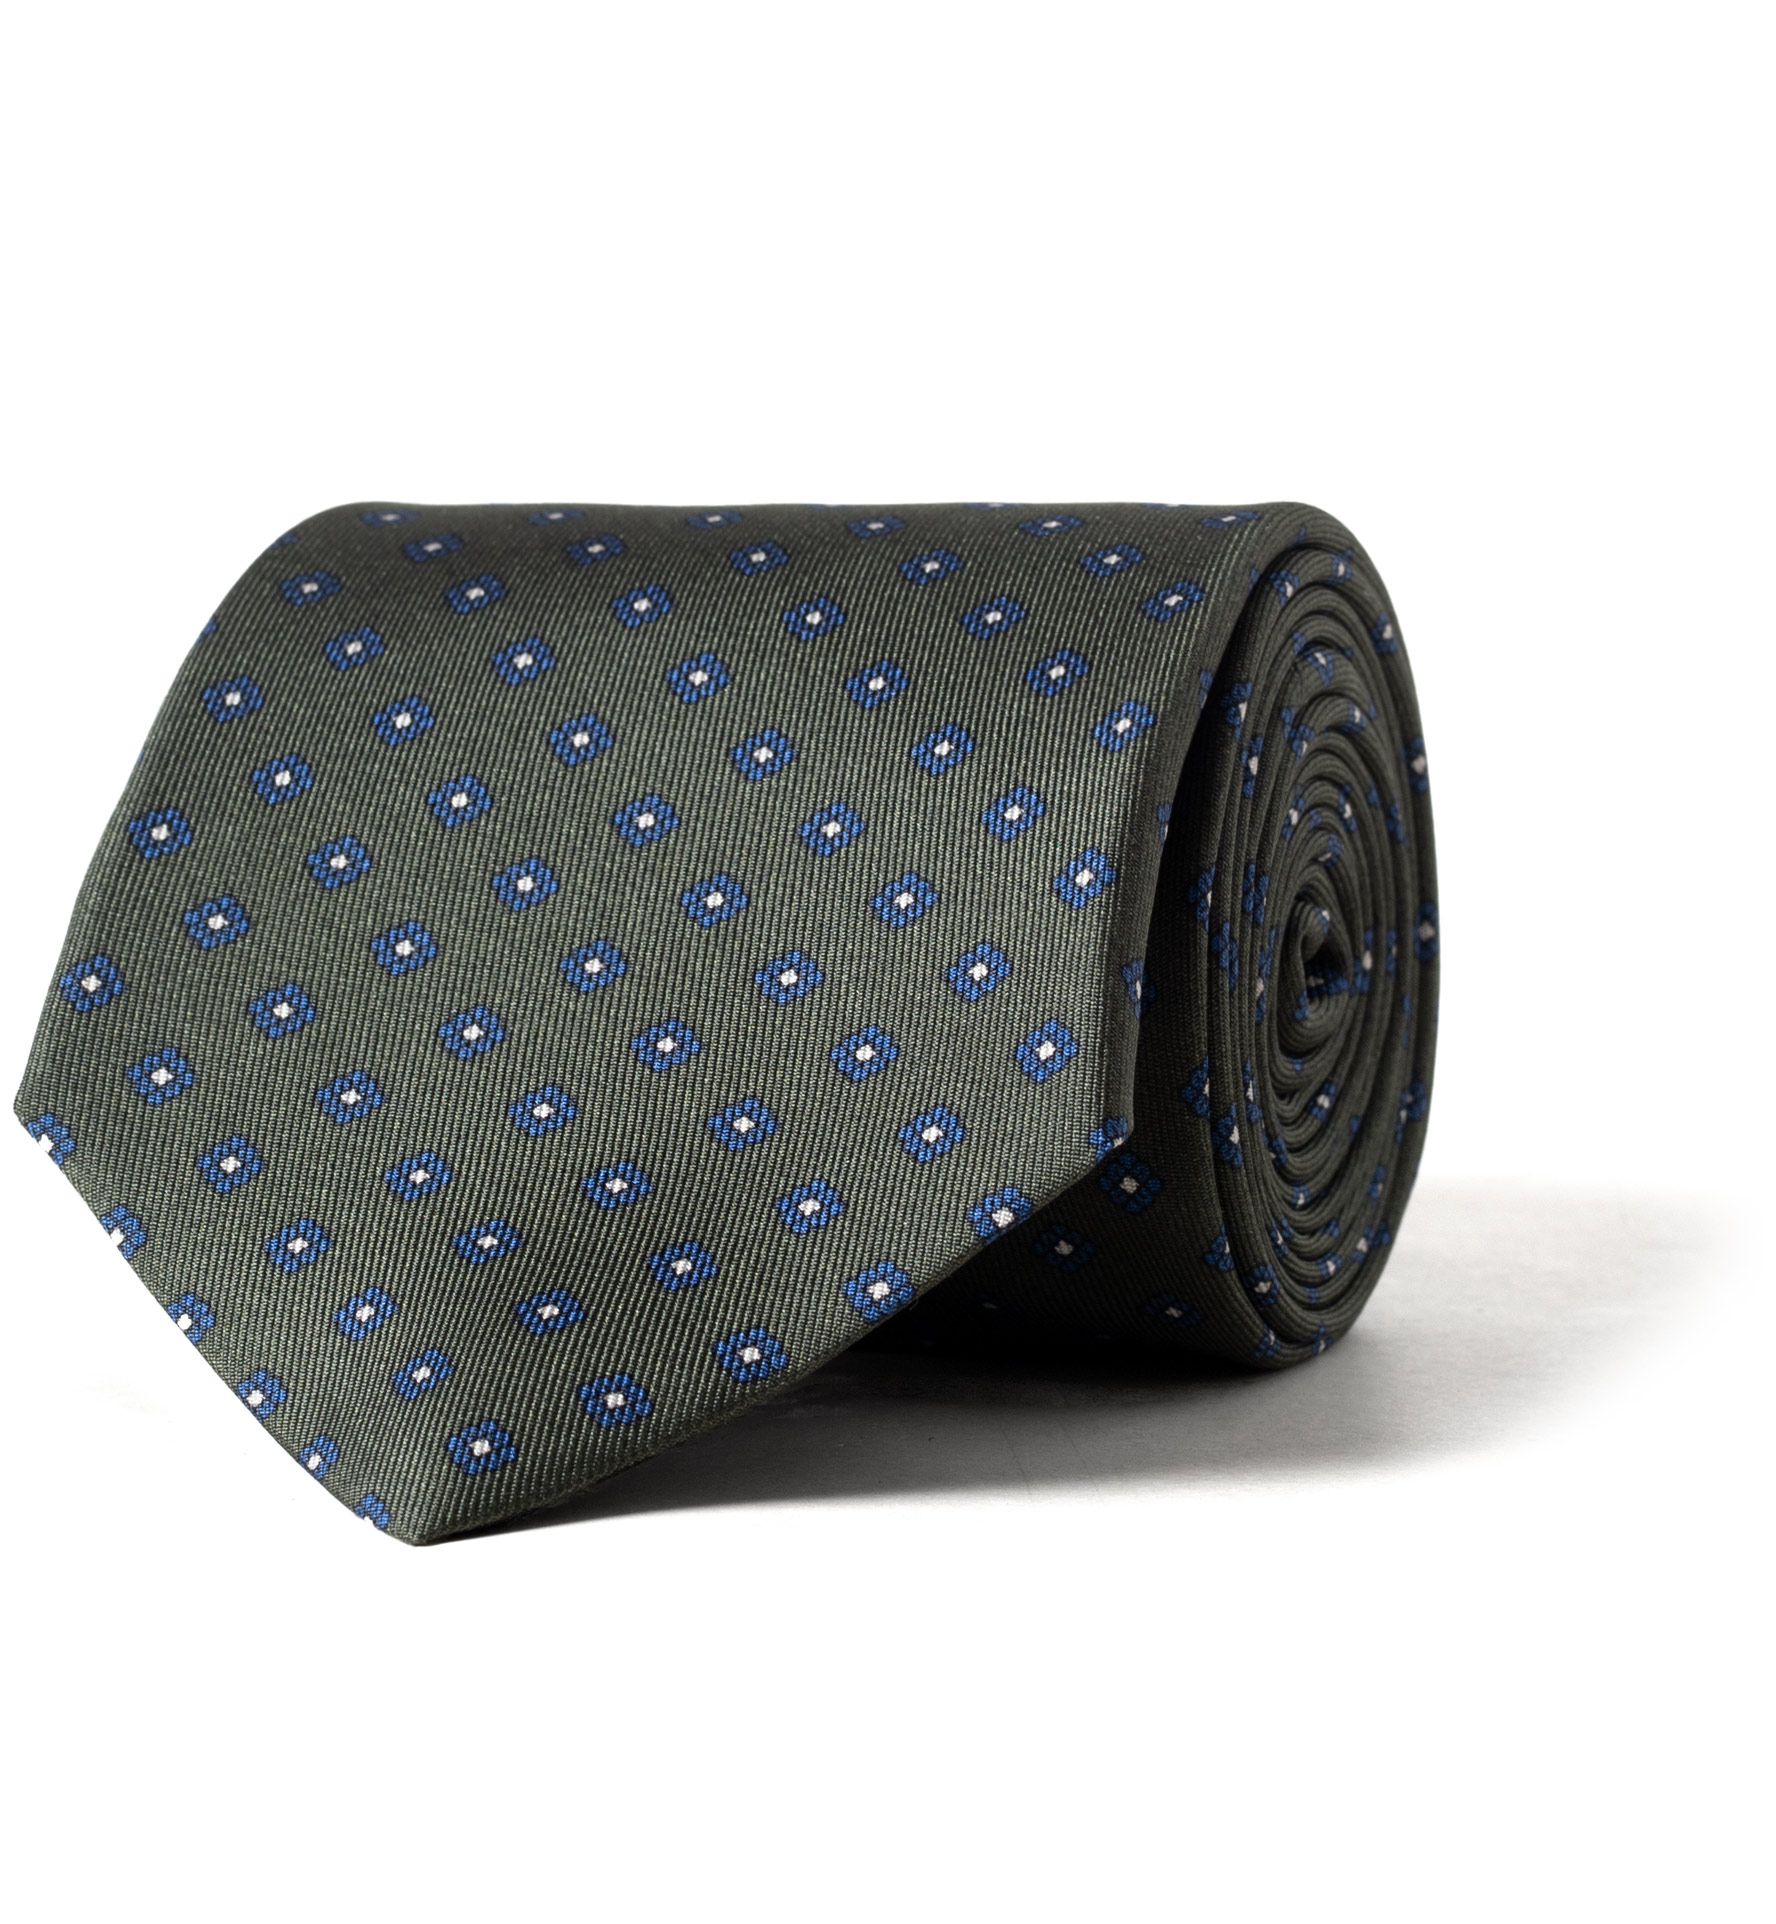 Zoom Image of Fatigue Small Foulard Print Silk Tie